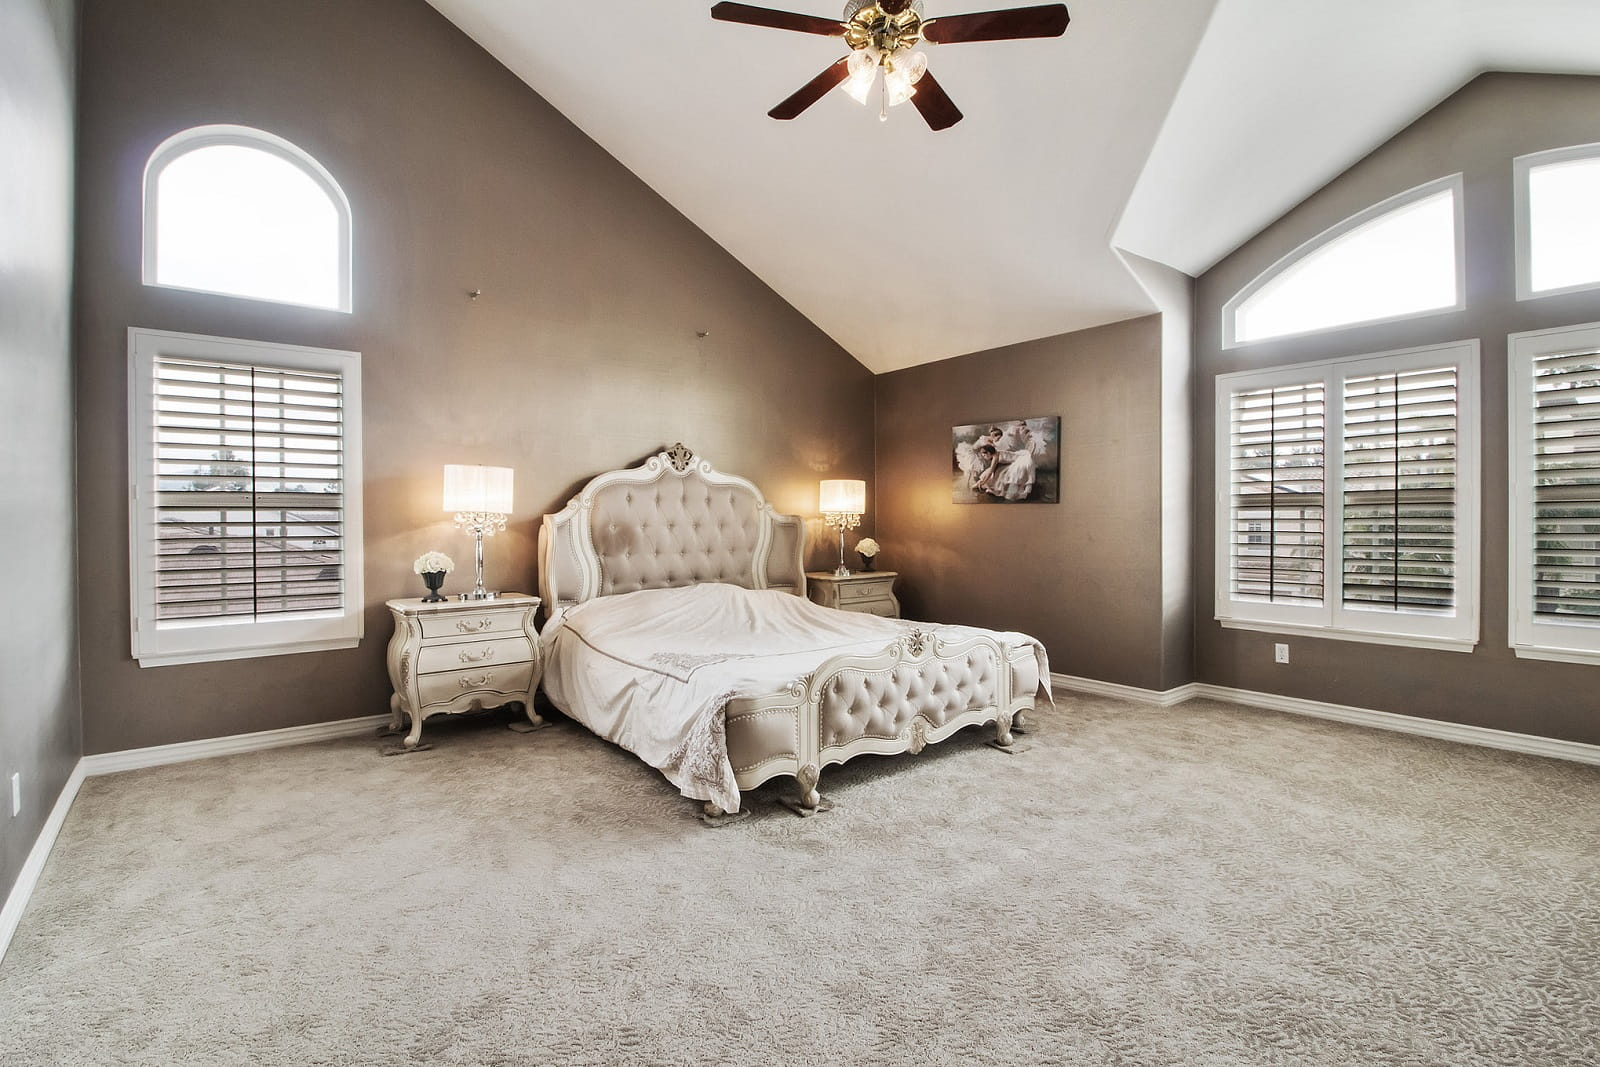 Real Estate Photography in Anaheim - CA - USA - Bedroom View